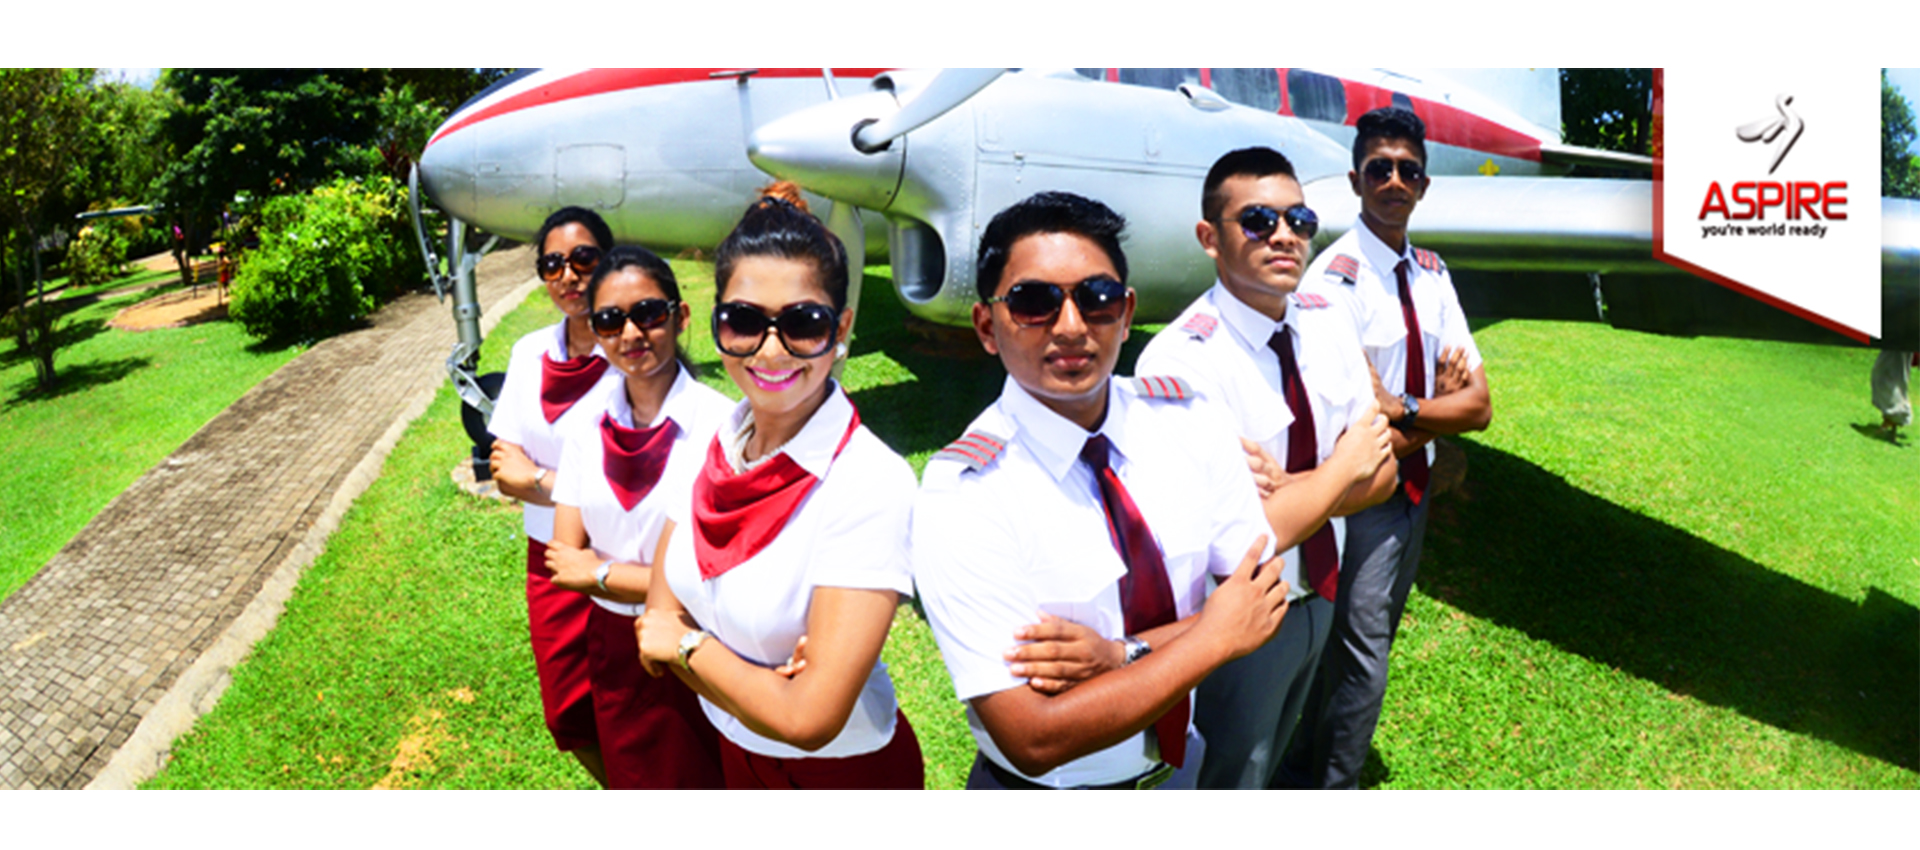 Yesman.lk - Cover Image - ASPIRE College of Higher Education